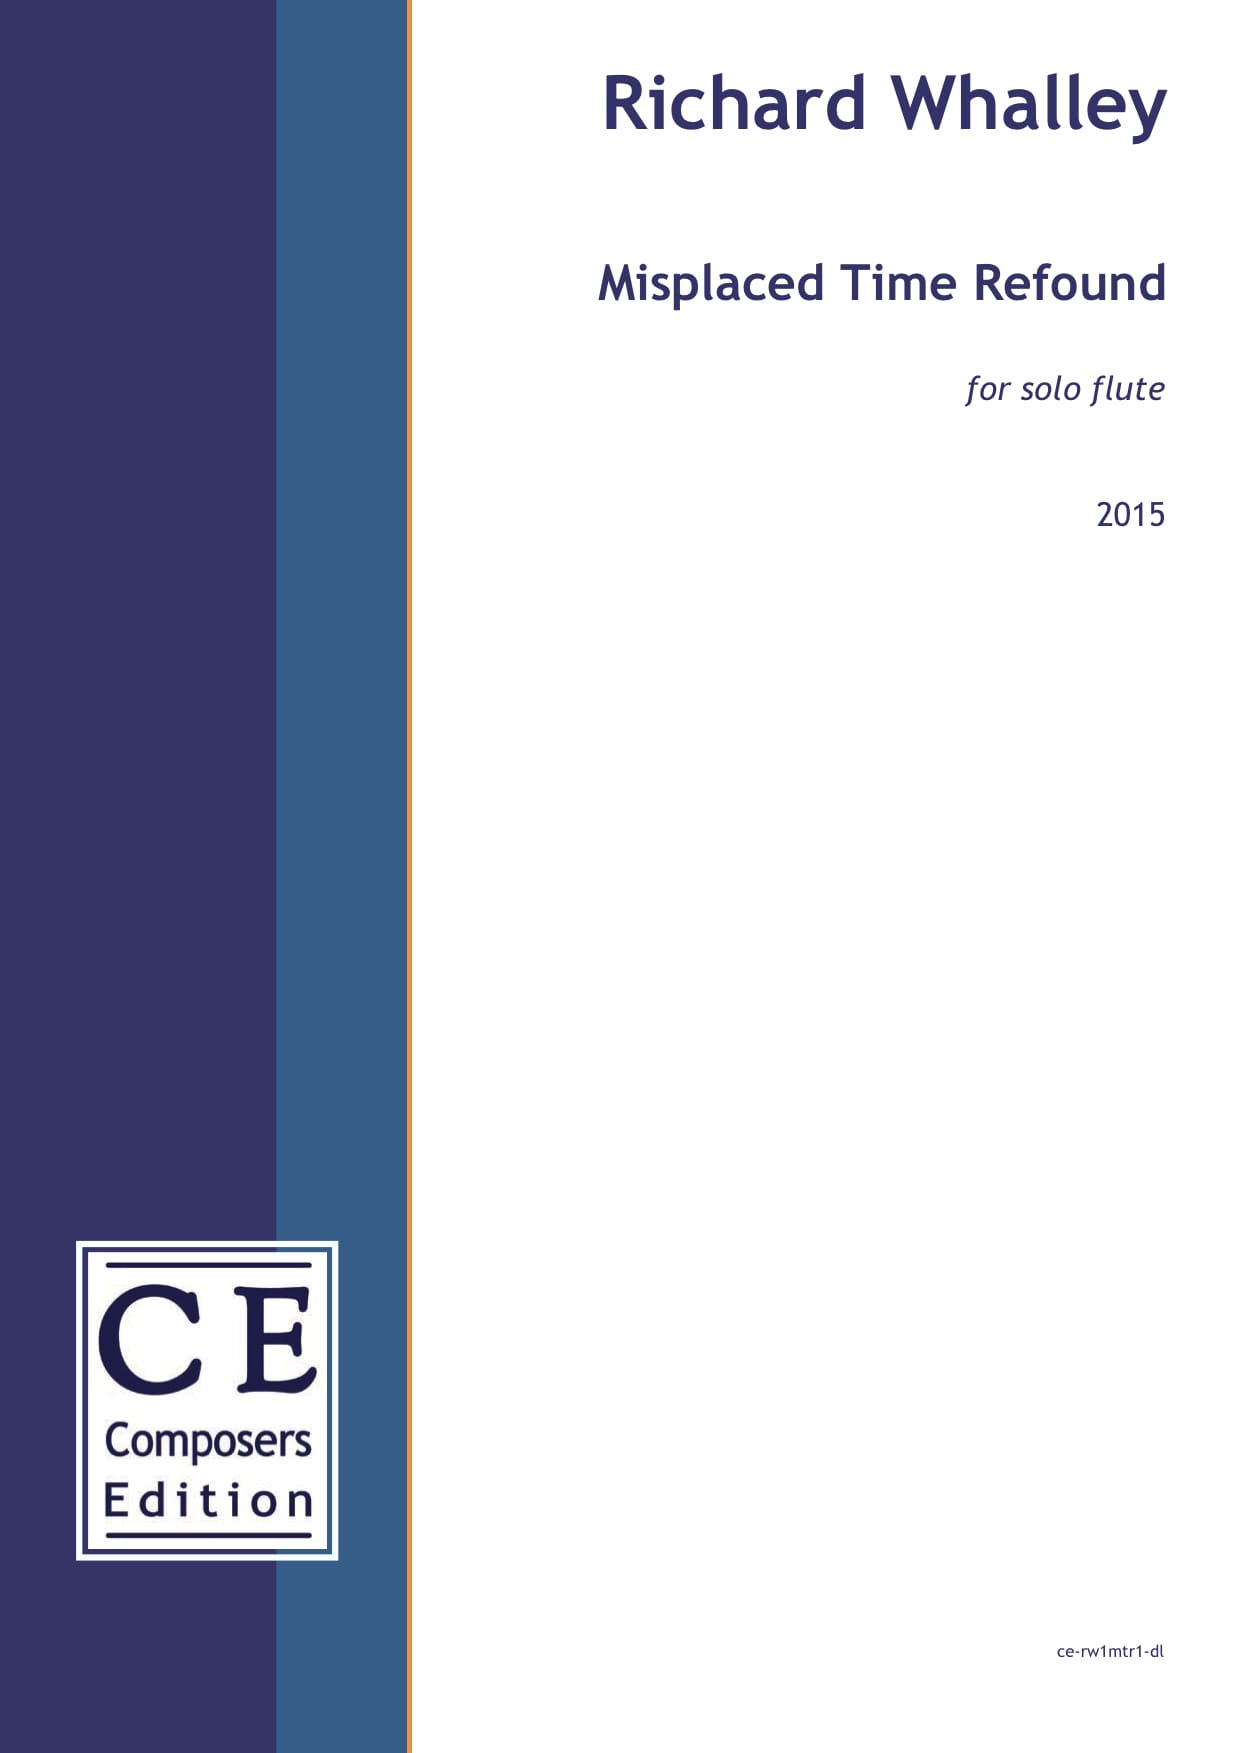 Richard Whalley: Misplaced Time Refound for solo flute